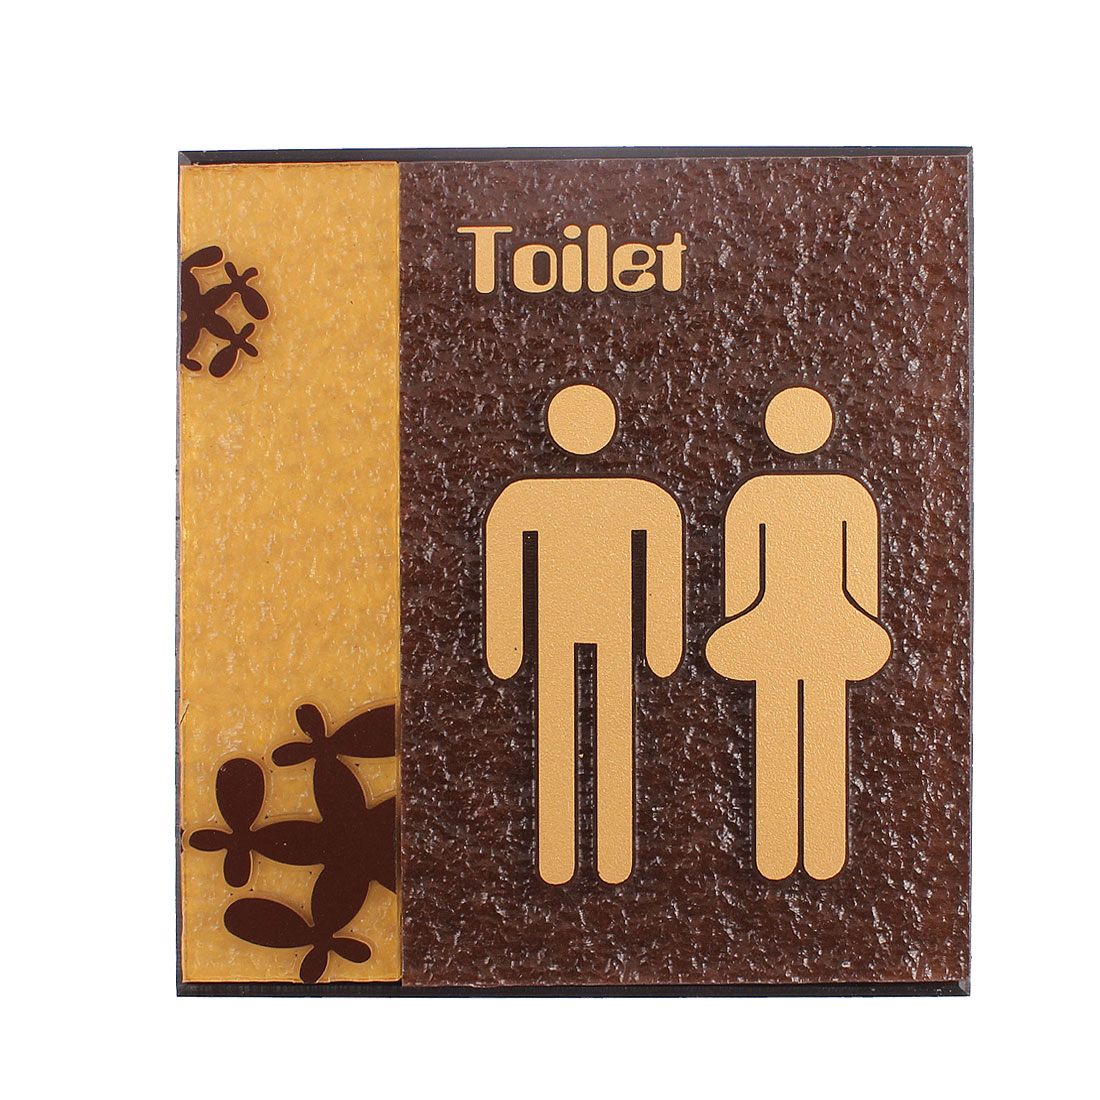 Restroom Toilet Unisex Man Lady Sign Acrylic Board Decal